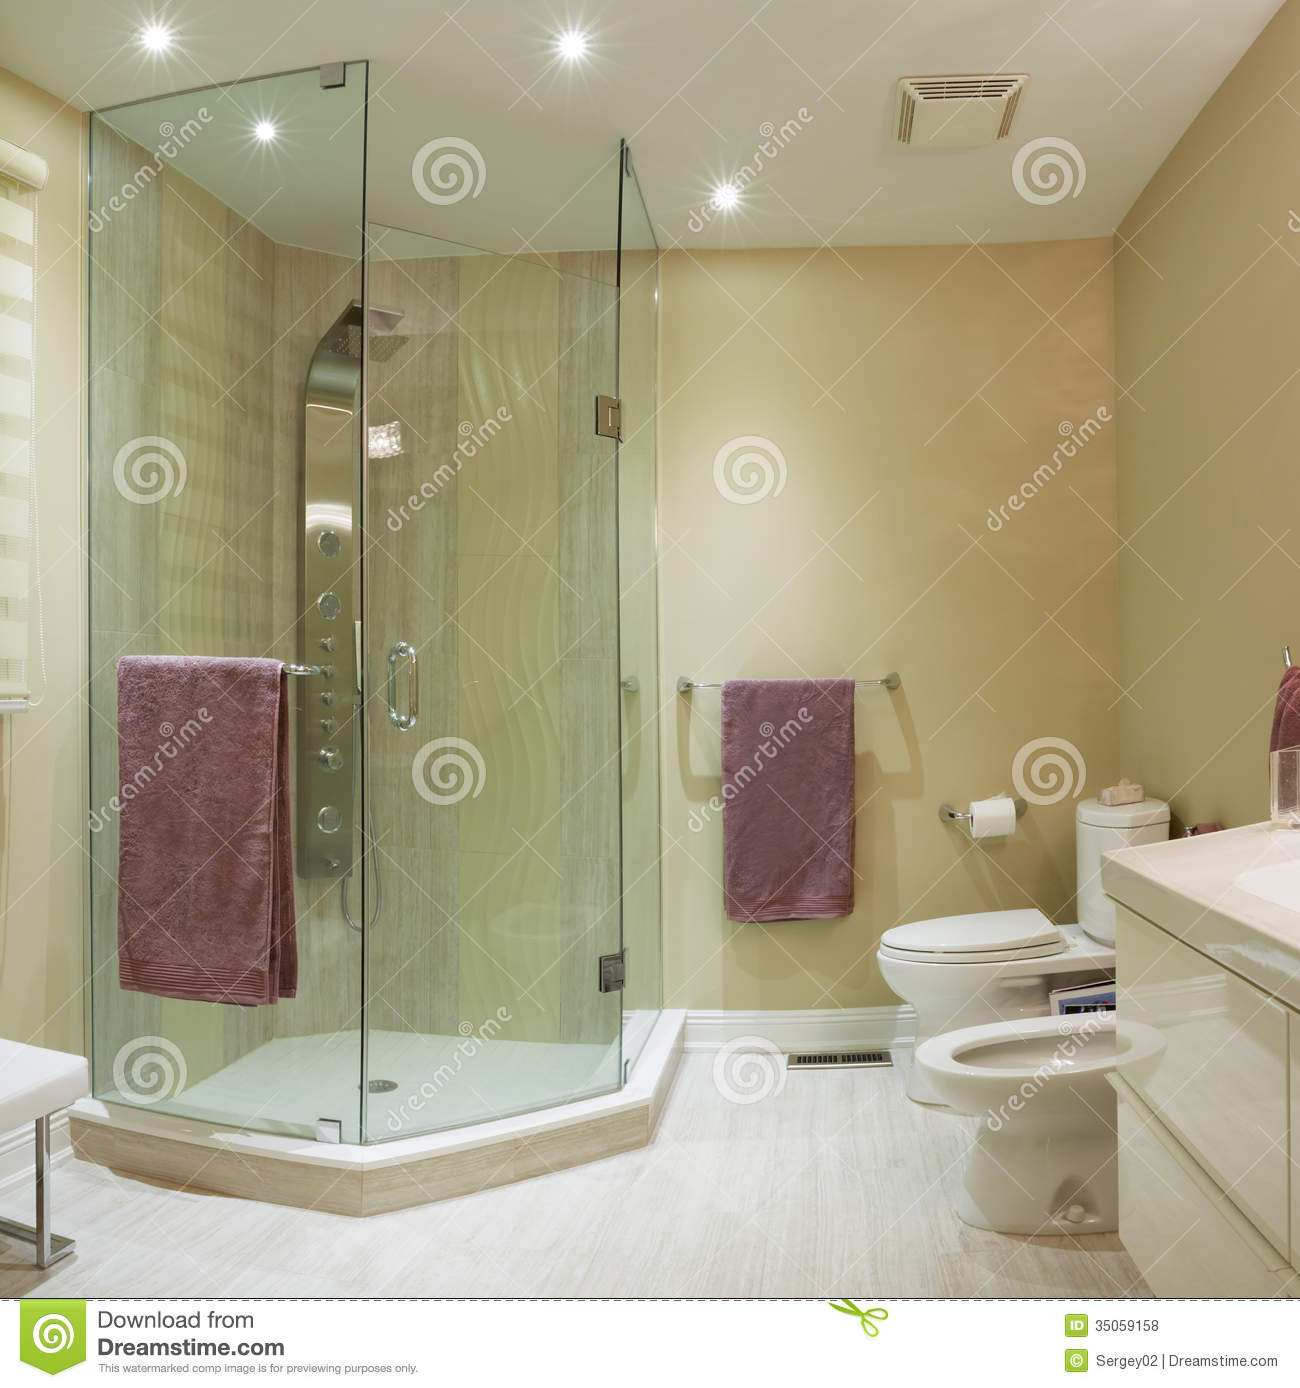 Interior design royalty free stock photos image 35059158 for House washroom design